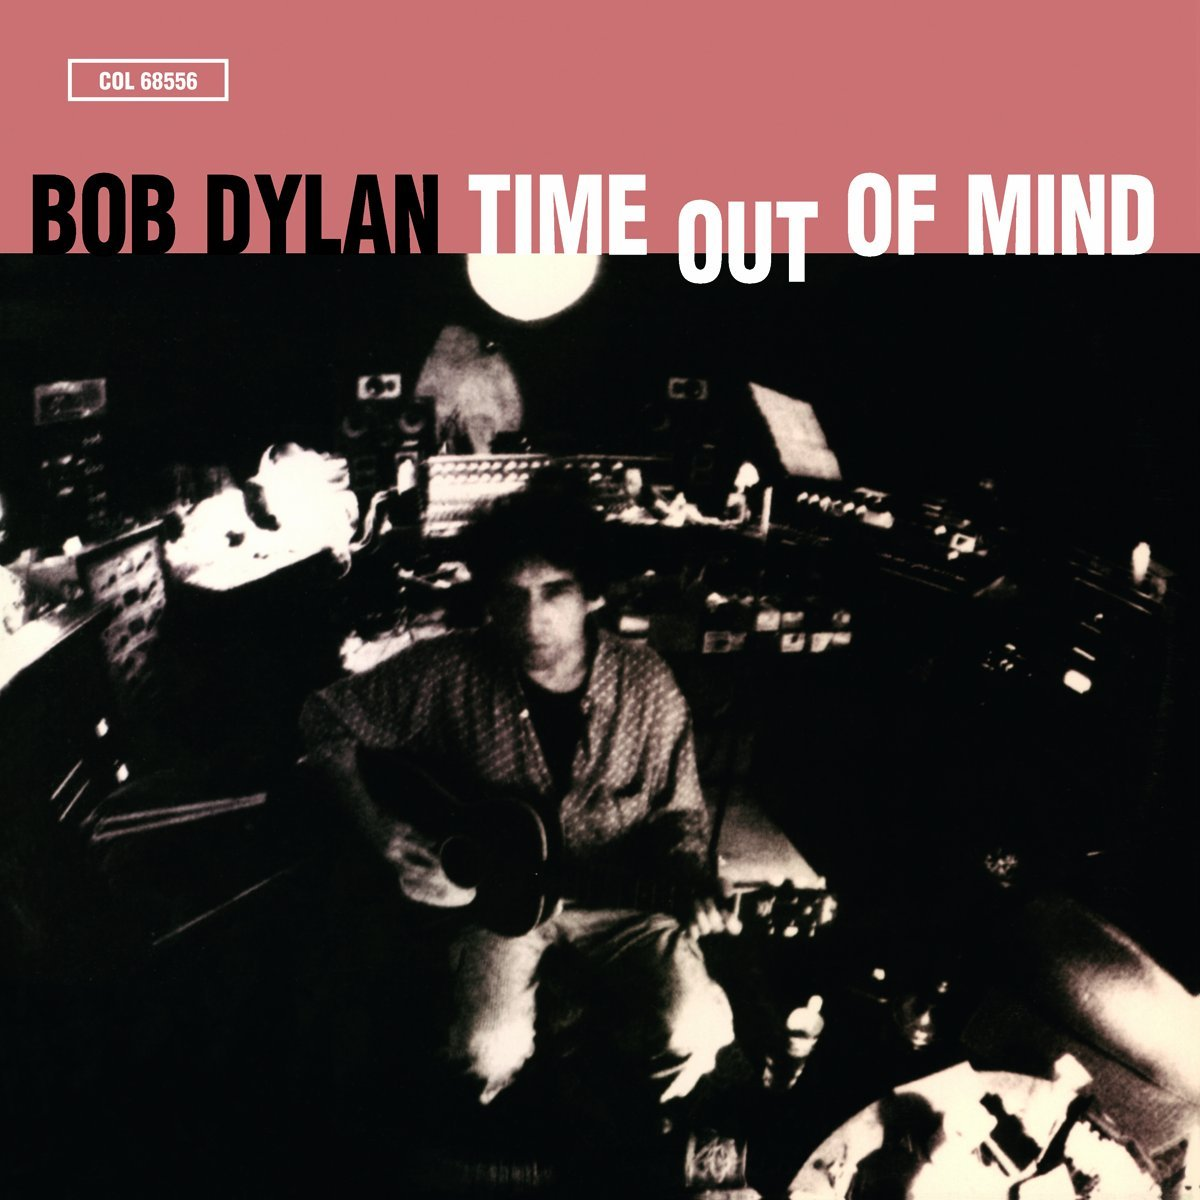 Copertina Vinile 33 giri Time Out of Mind [2 LP + 45 Giri] di Bob Dylan